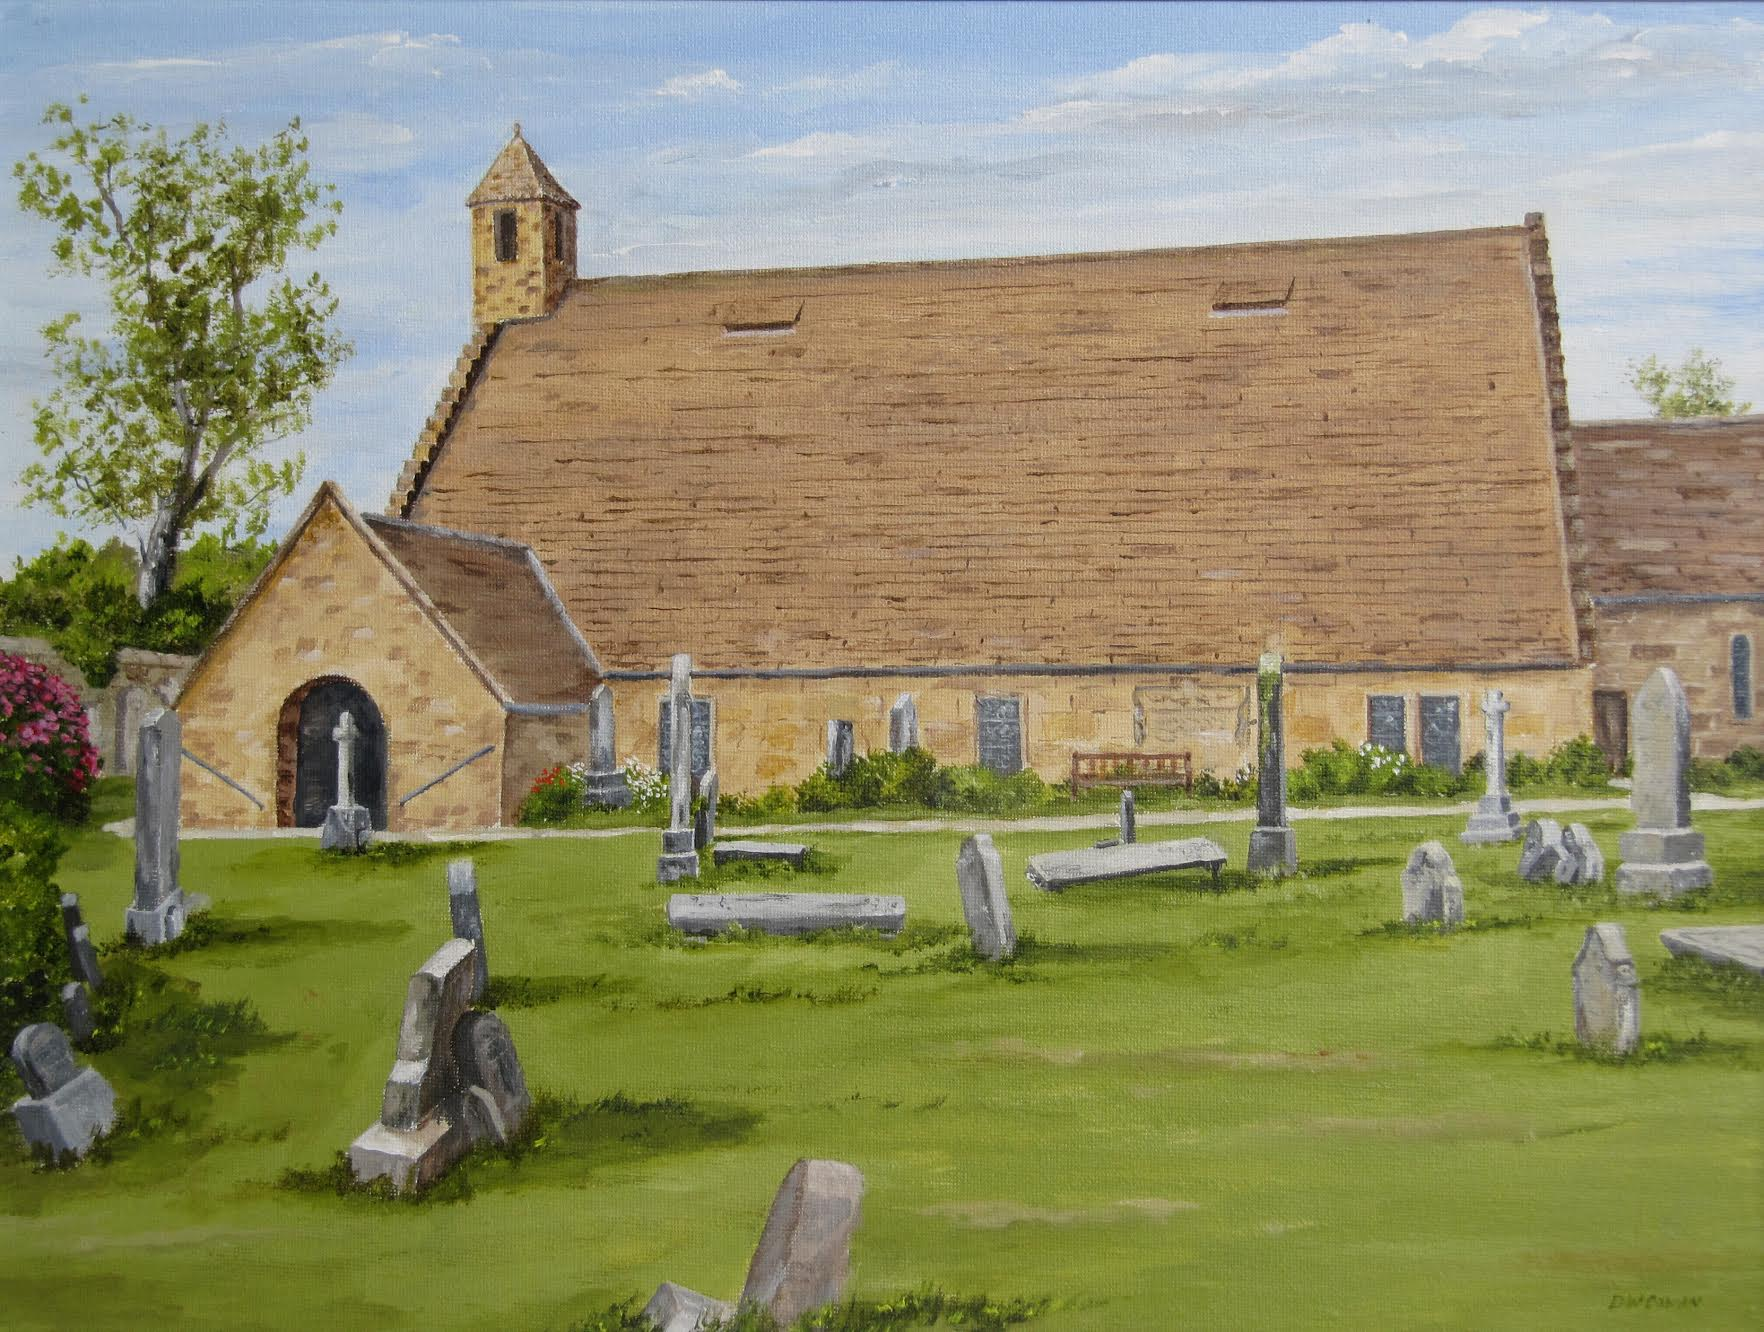 Painting by Wallace Cowan: St. Fillan's from the south